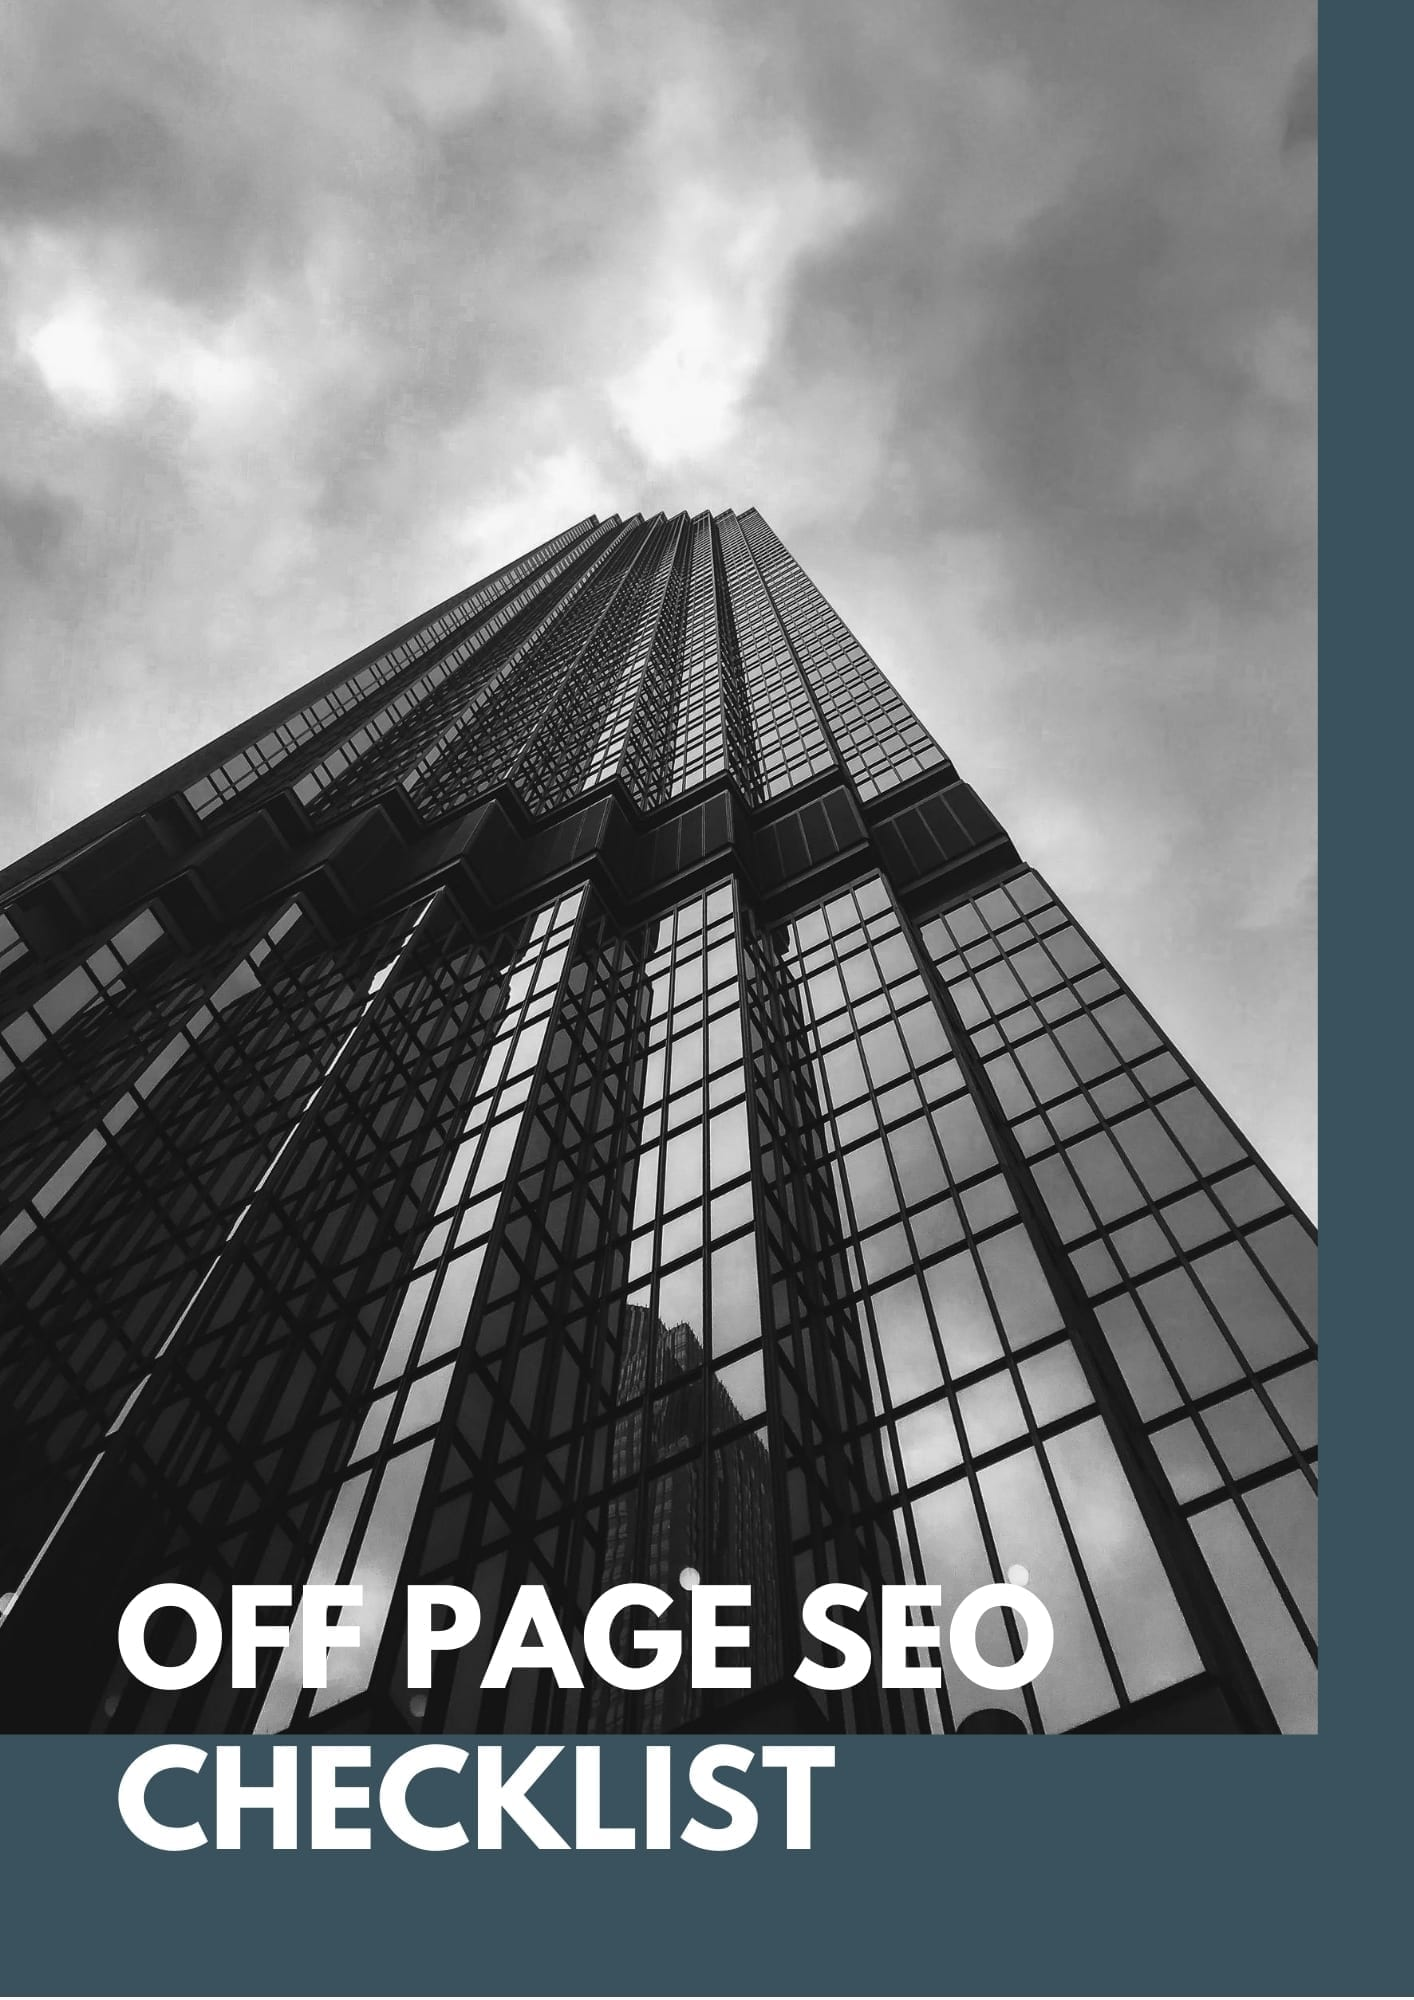 Off Page SEO Audit Checklist by Nexis Novus Technology